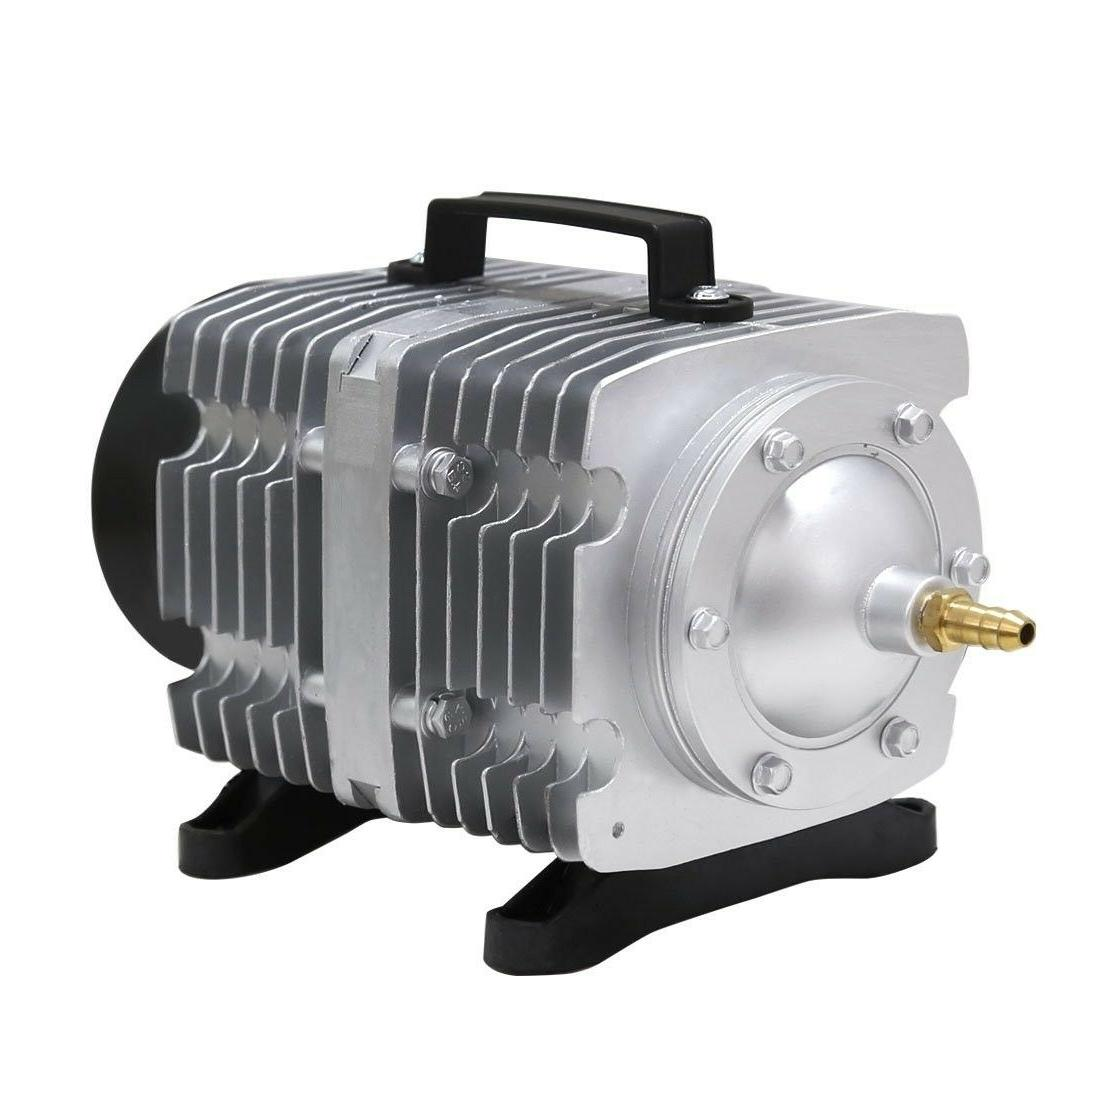 VIVOSUN Air GPH 102W Outlet Commercial Grow Weed